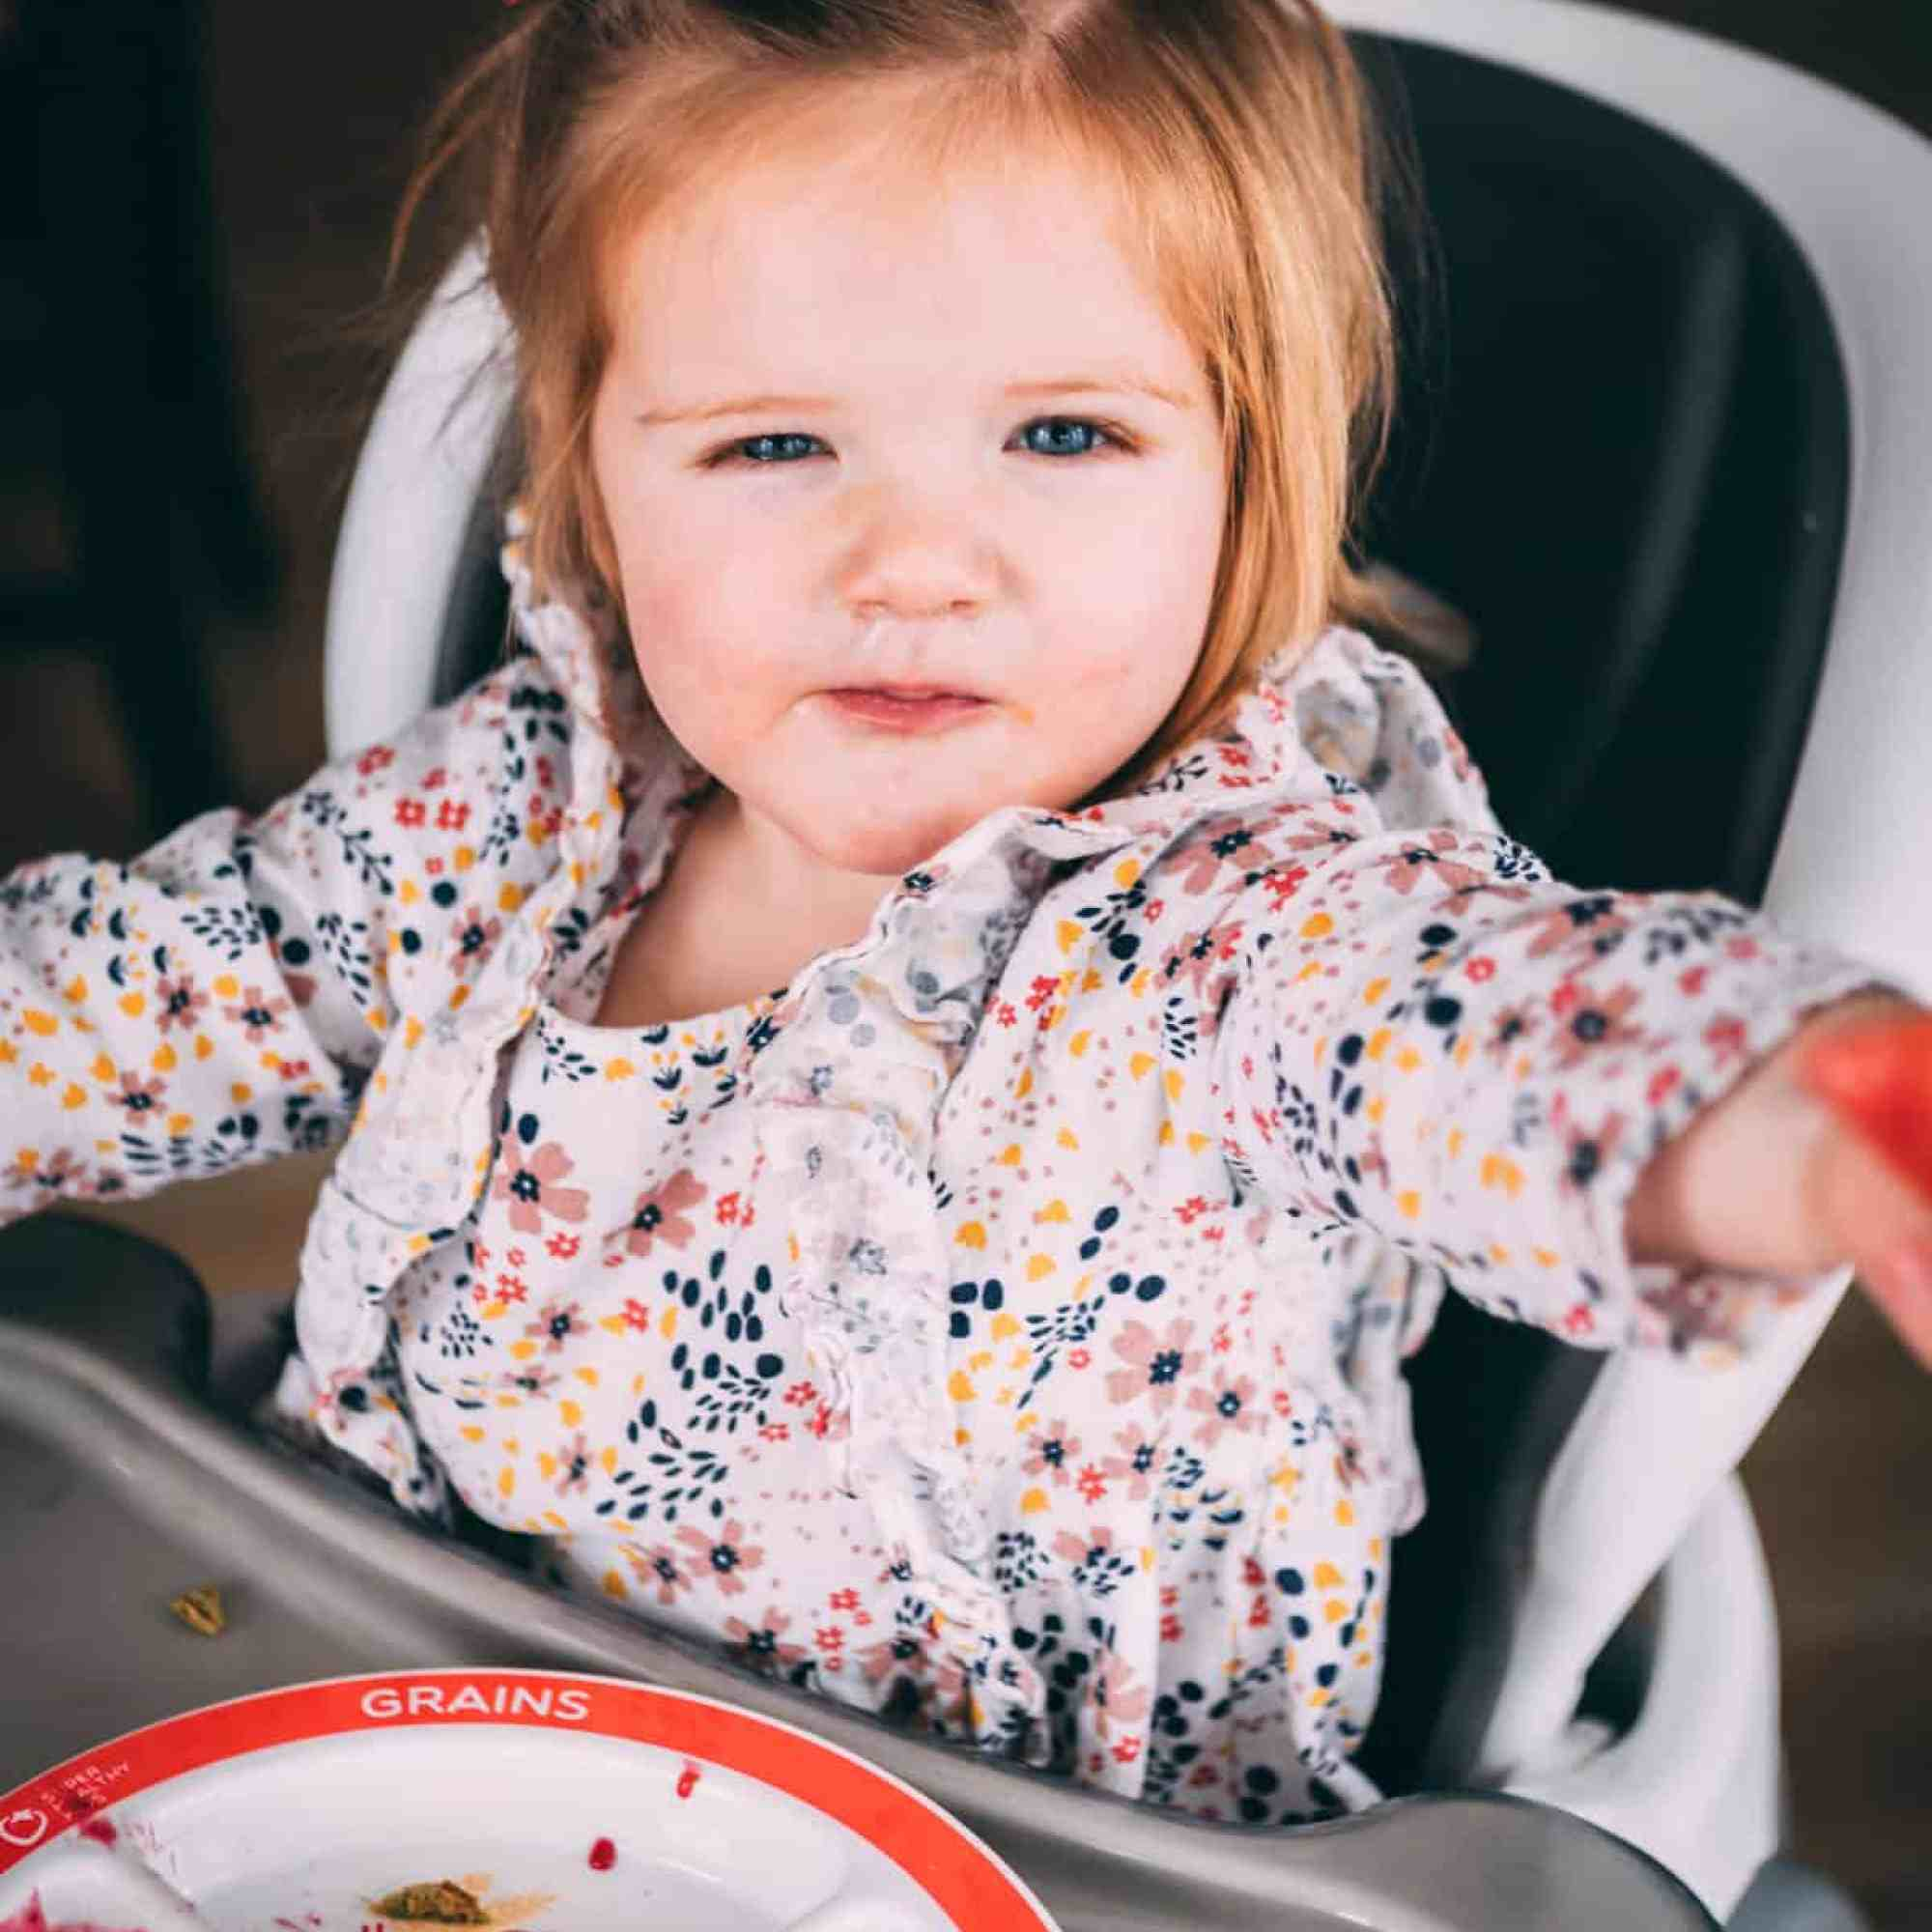 James looks up from her highchair smiling with a plate of waffle in front of her.